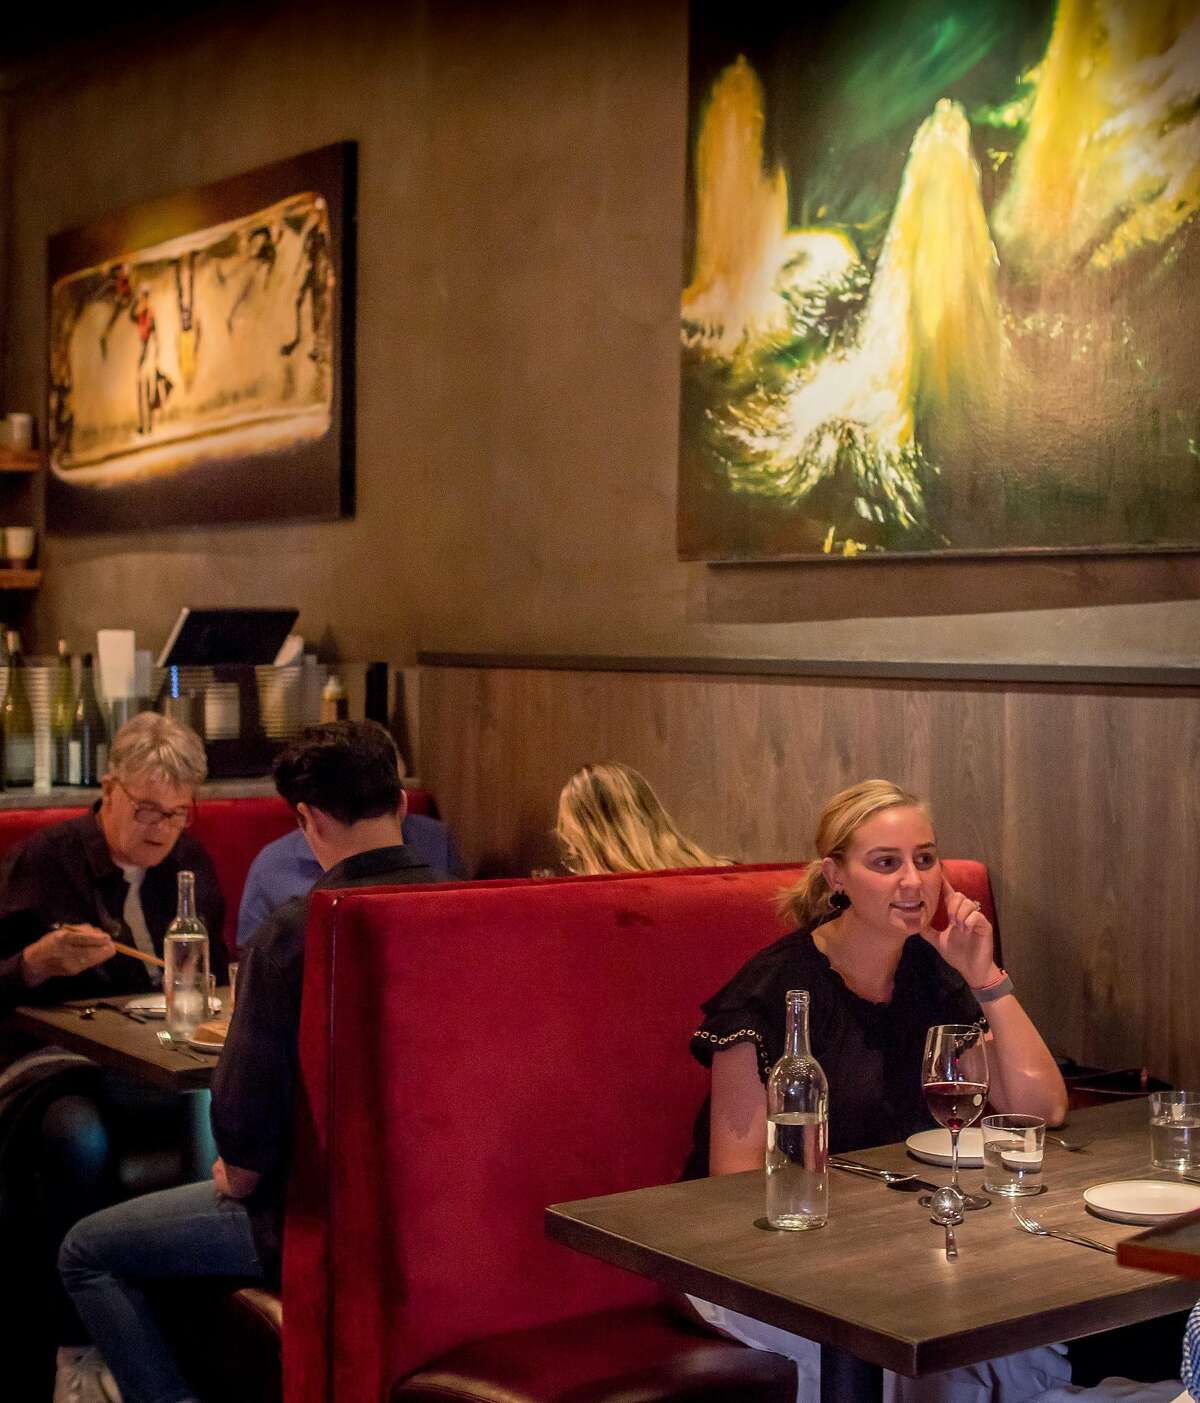 People have dinner at Madcap in San Anselmo, Calif., on October 20th, 2017.